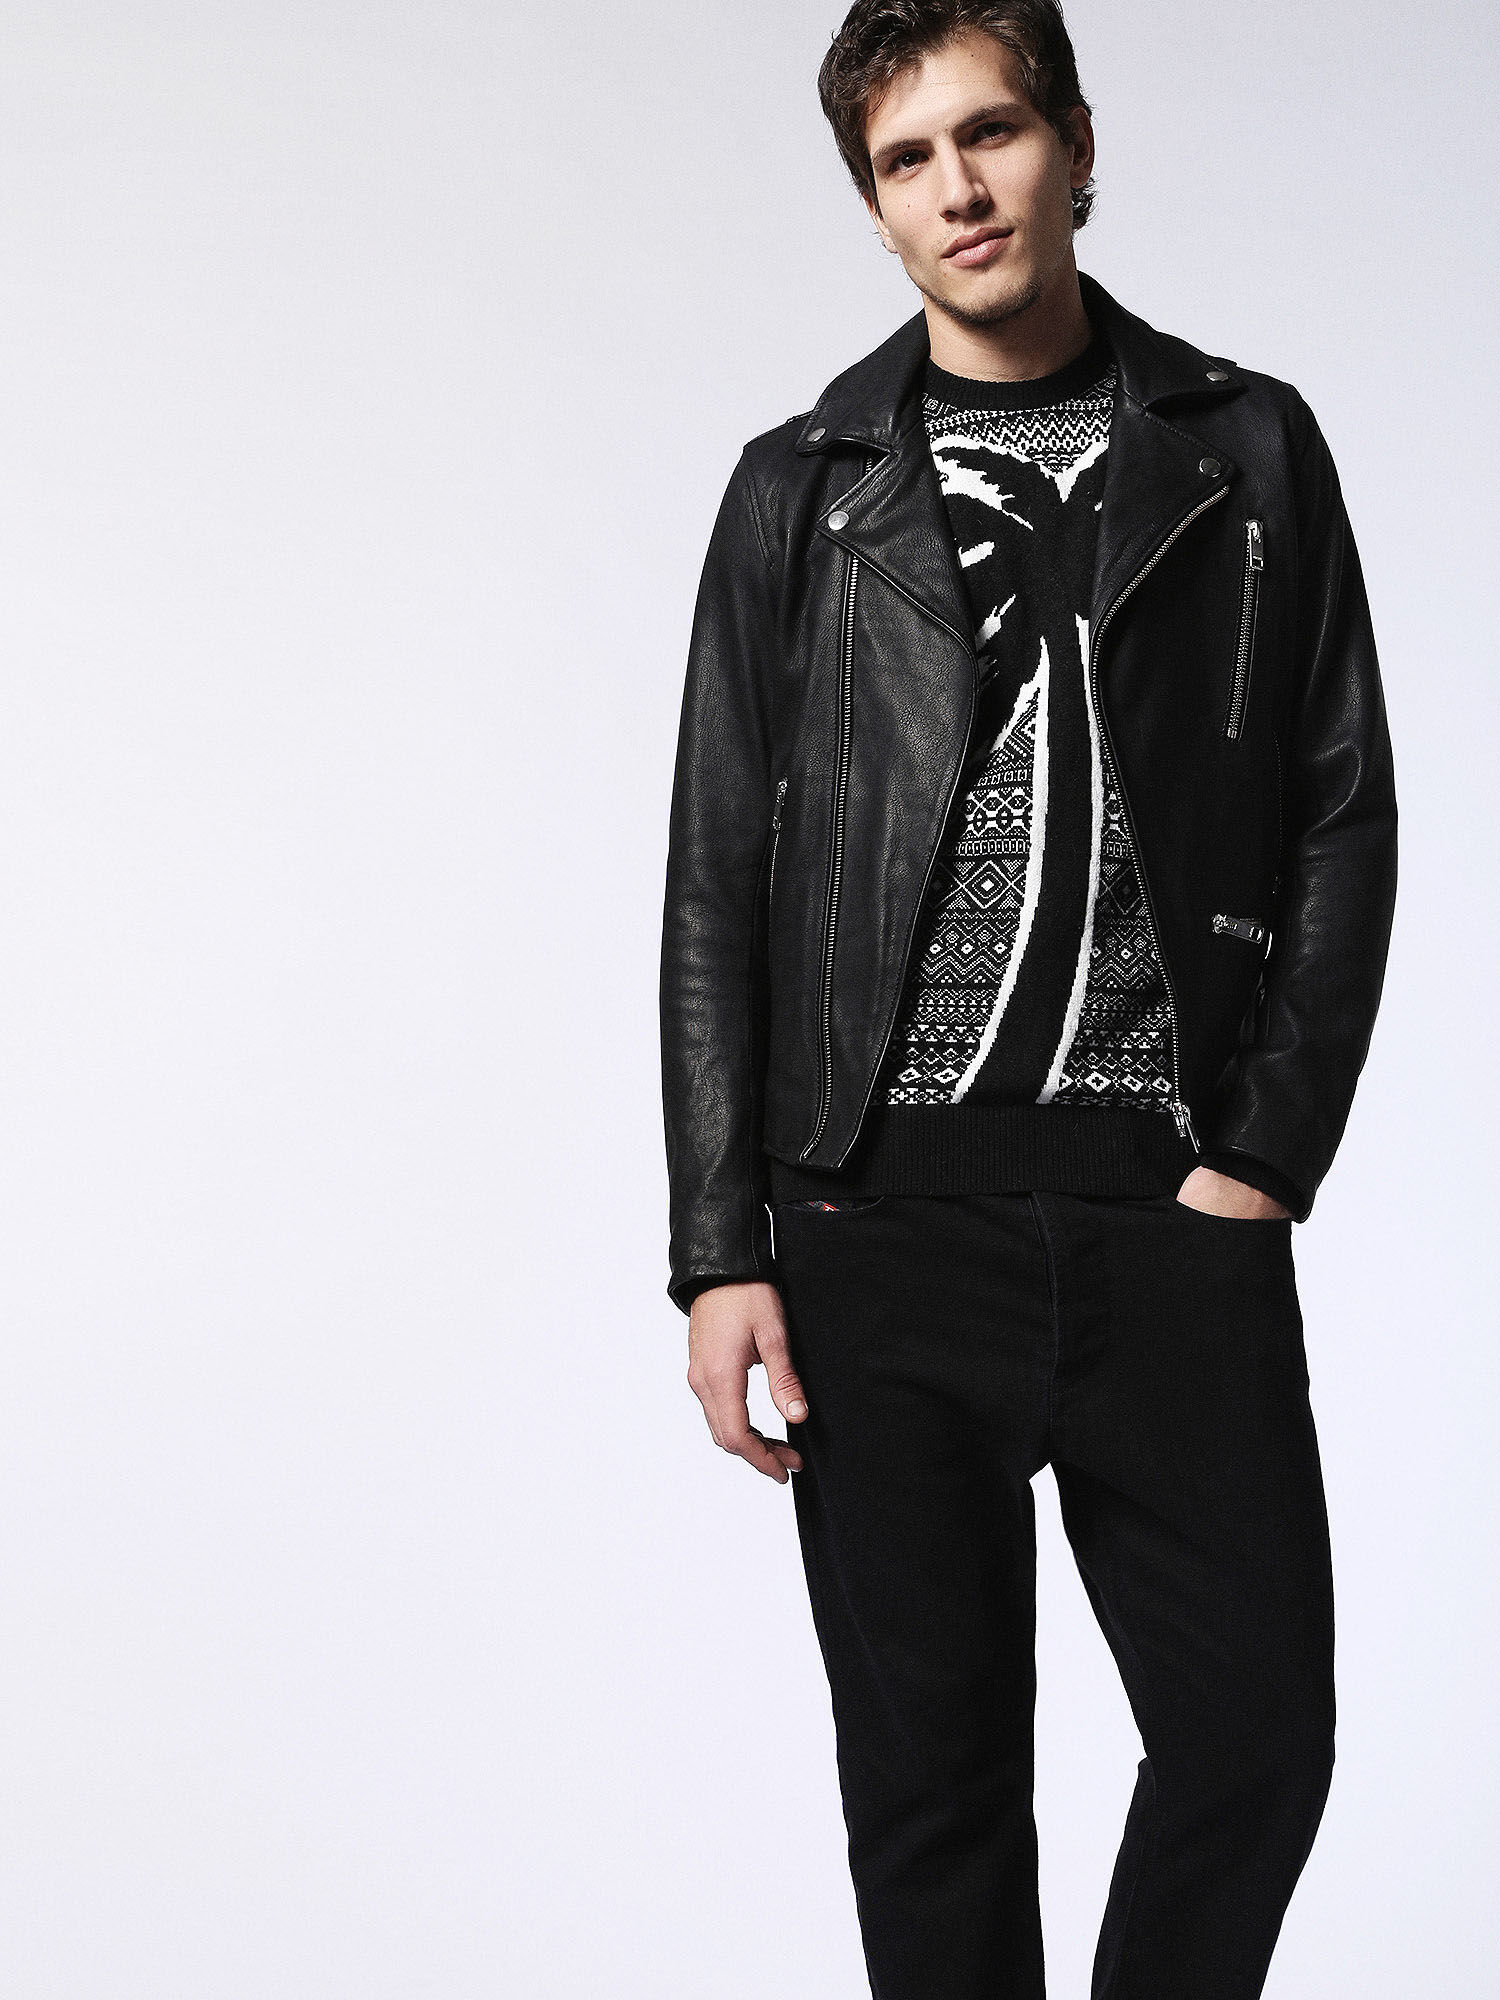 00SIYP0IAIV Leather jackets Man L-GIBSON-1 by Diesel Black